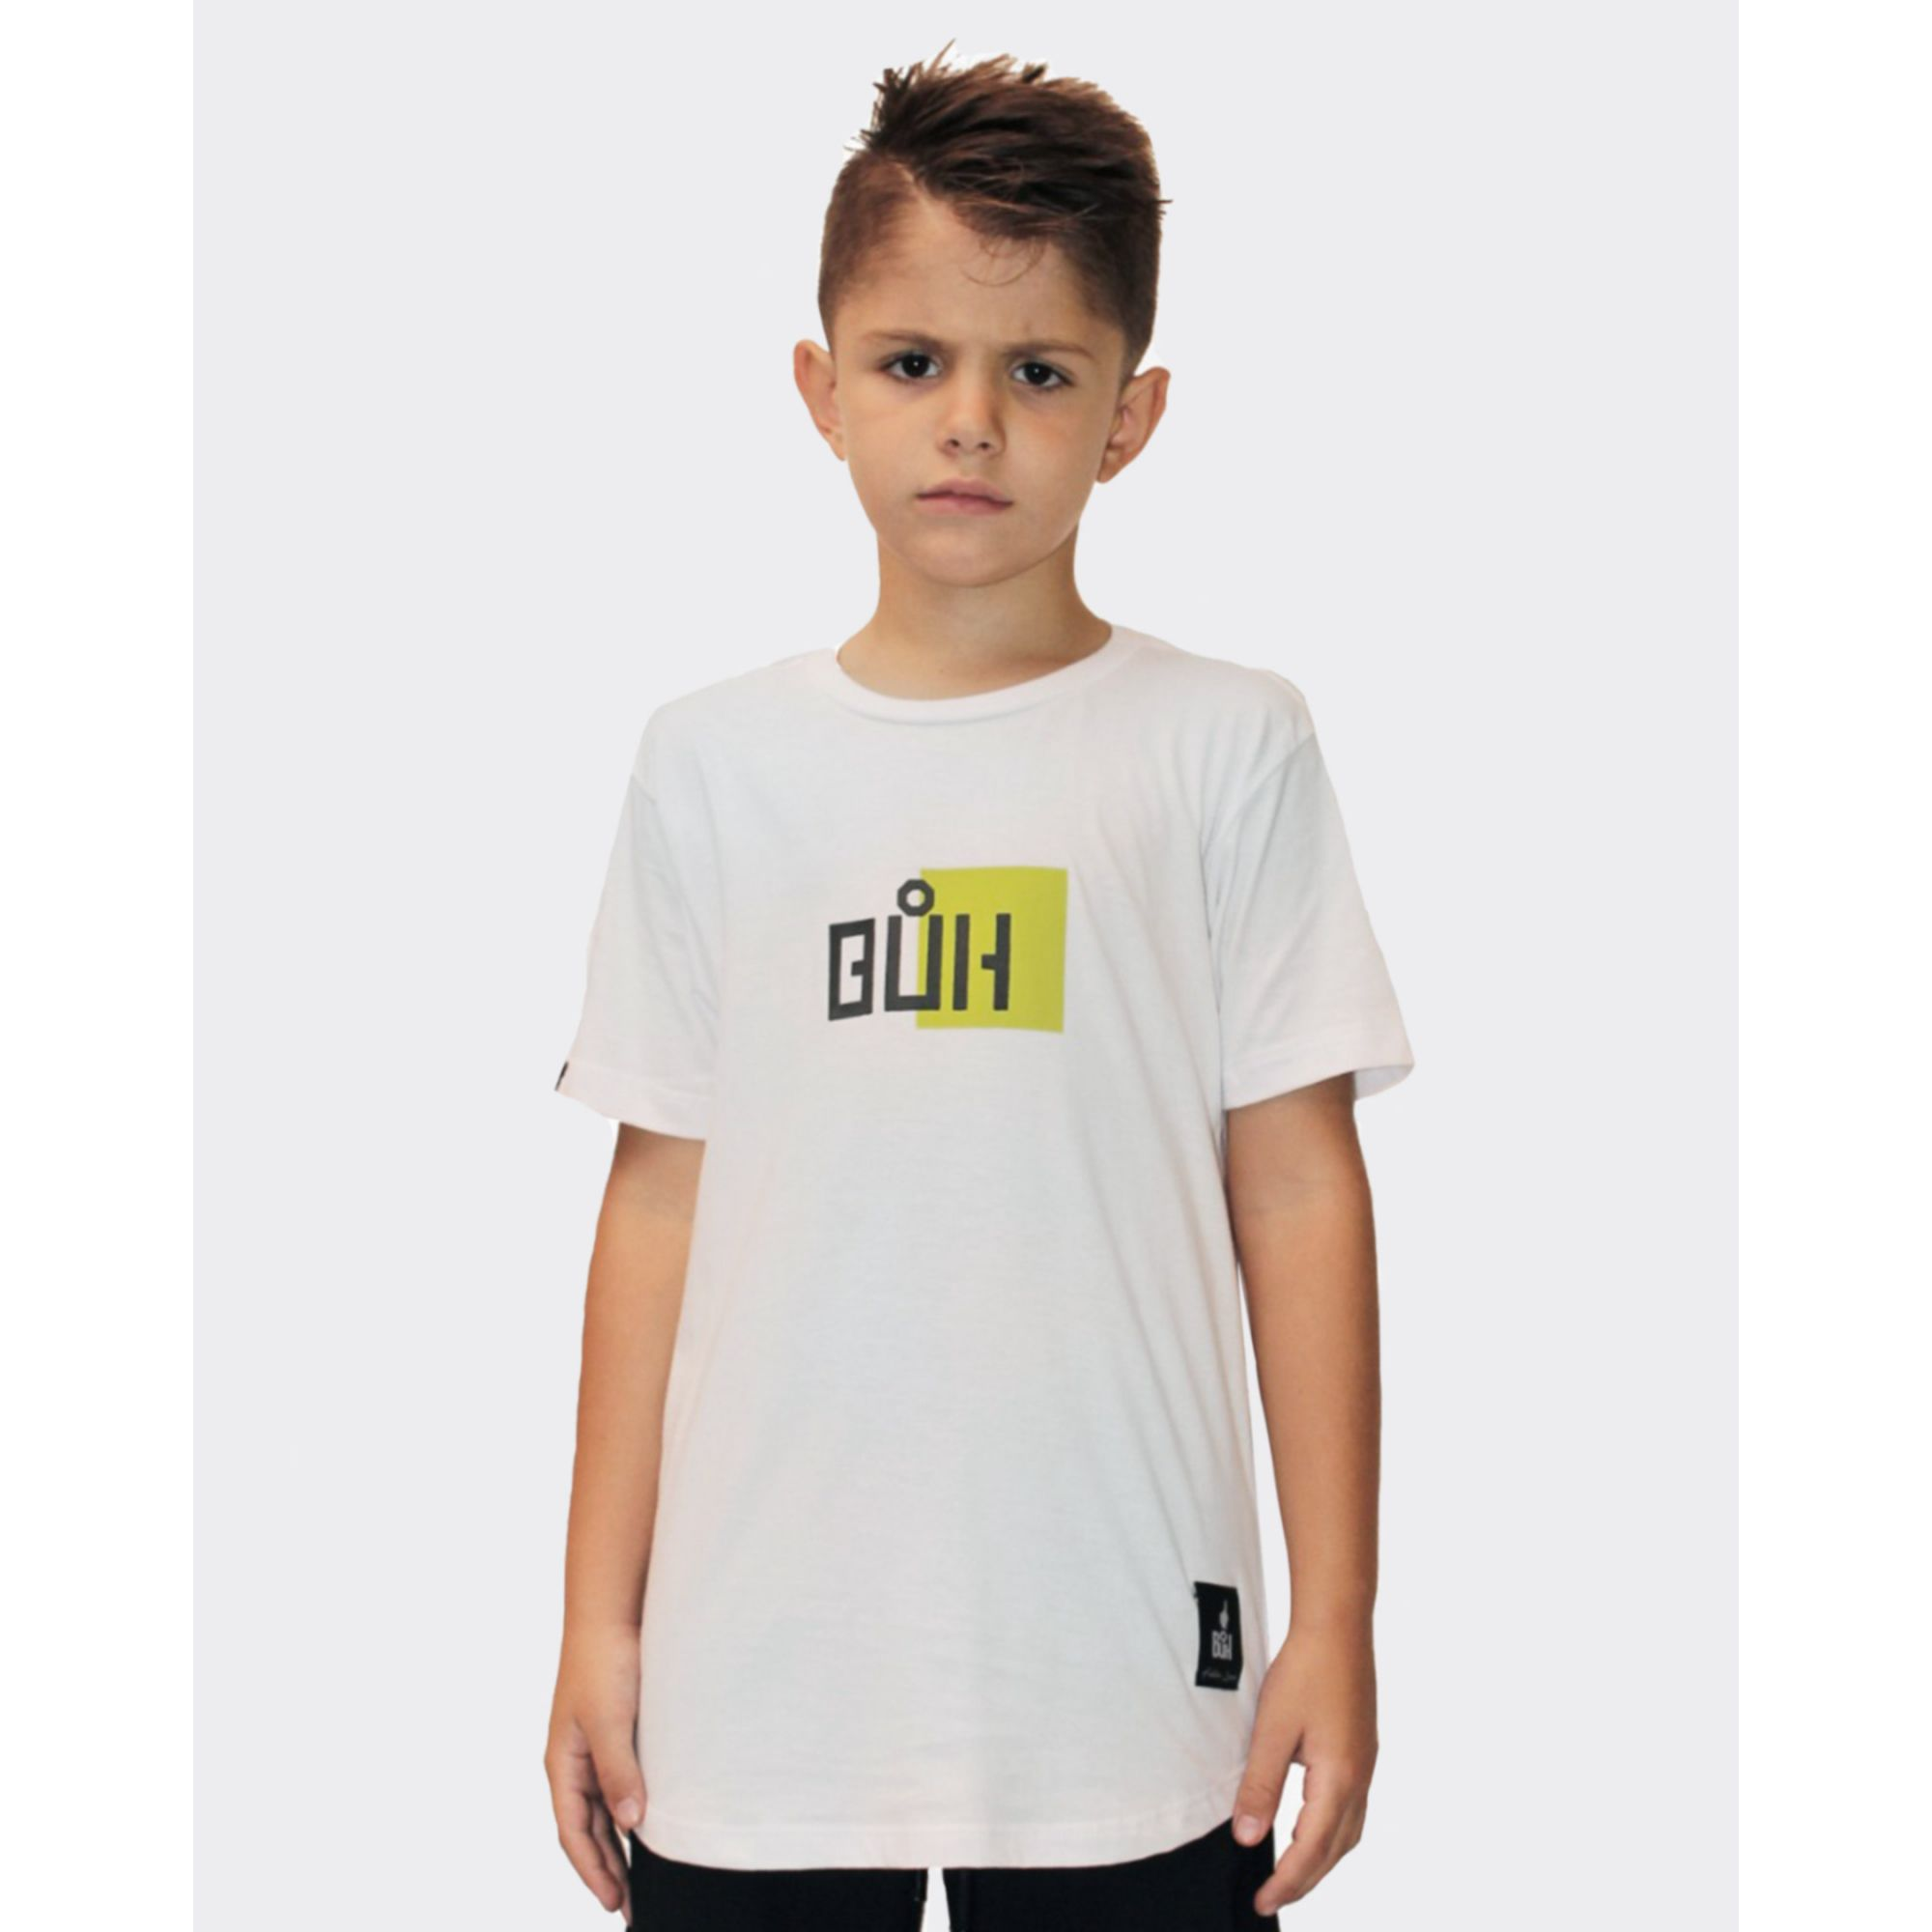 Camiseta Buh Kids Little Square White